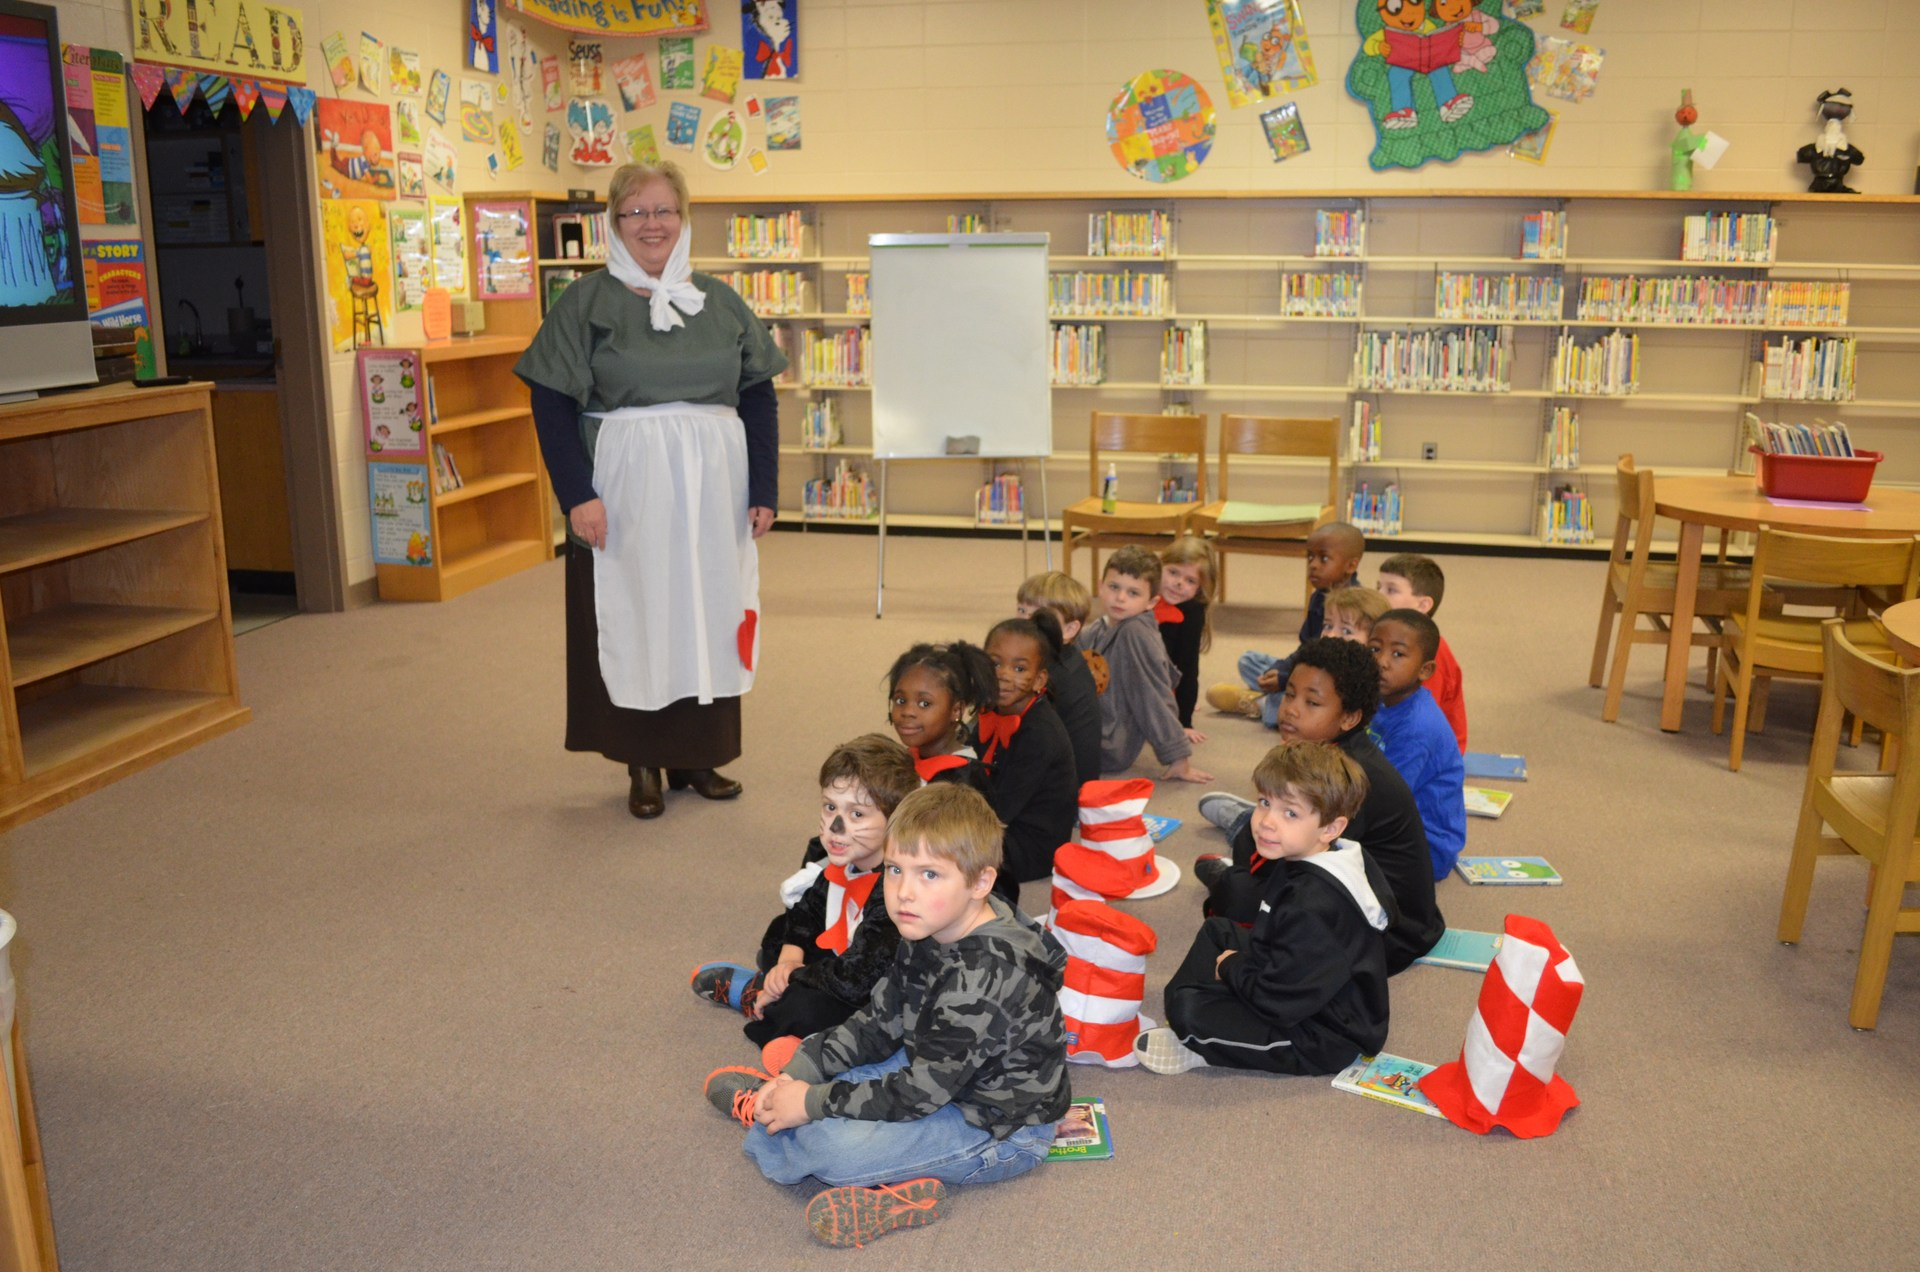 BES Librariand and students celebrate Read Across America Day.  Librarian portrays the character Strega Nona and students are dressed as Cat in the Hat.